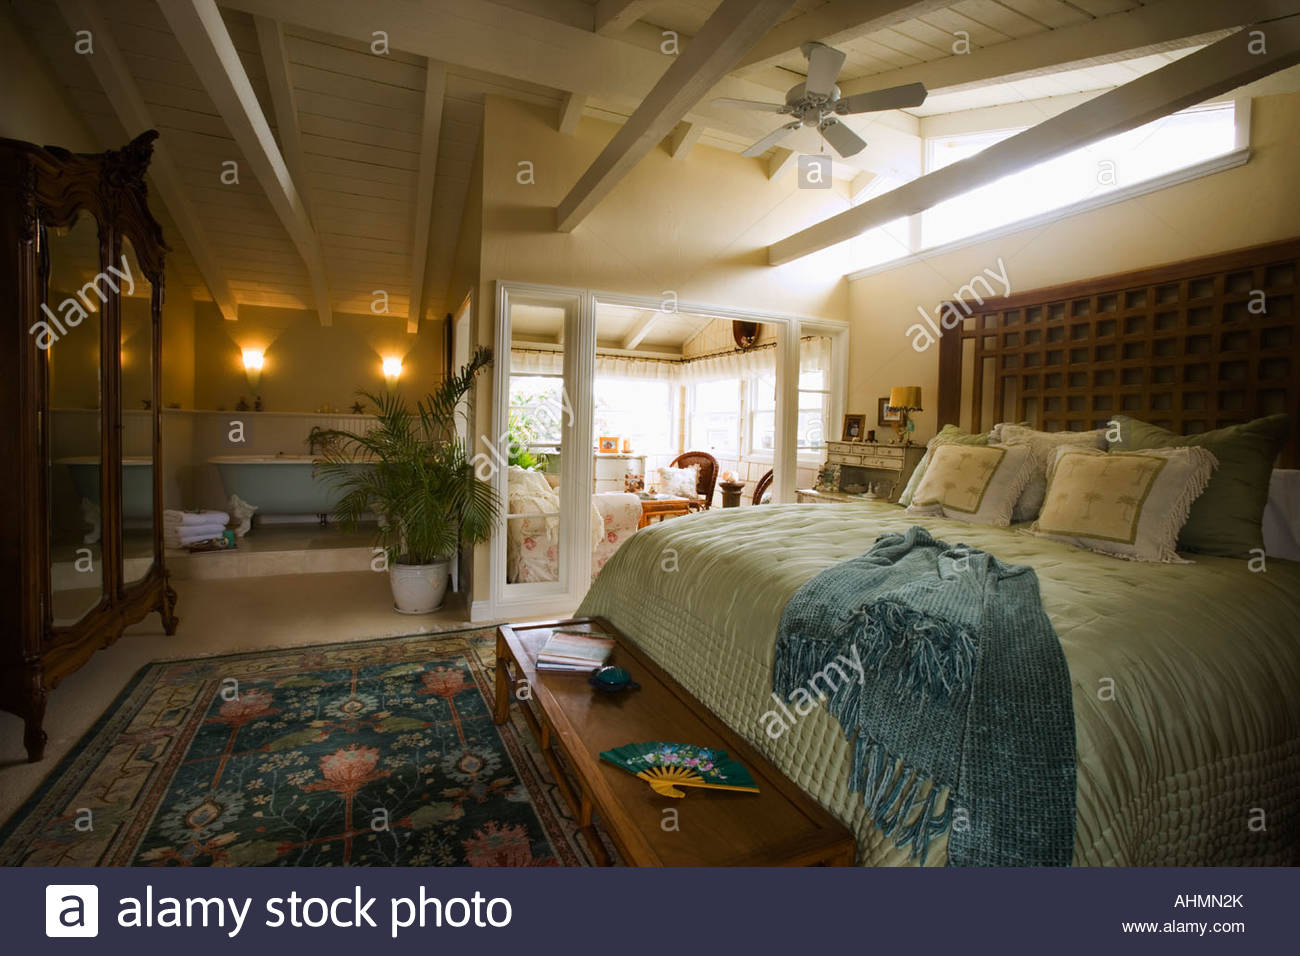 Large Master Bedroom with Claw Foot Tub - Stock Image